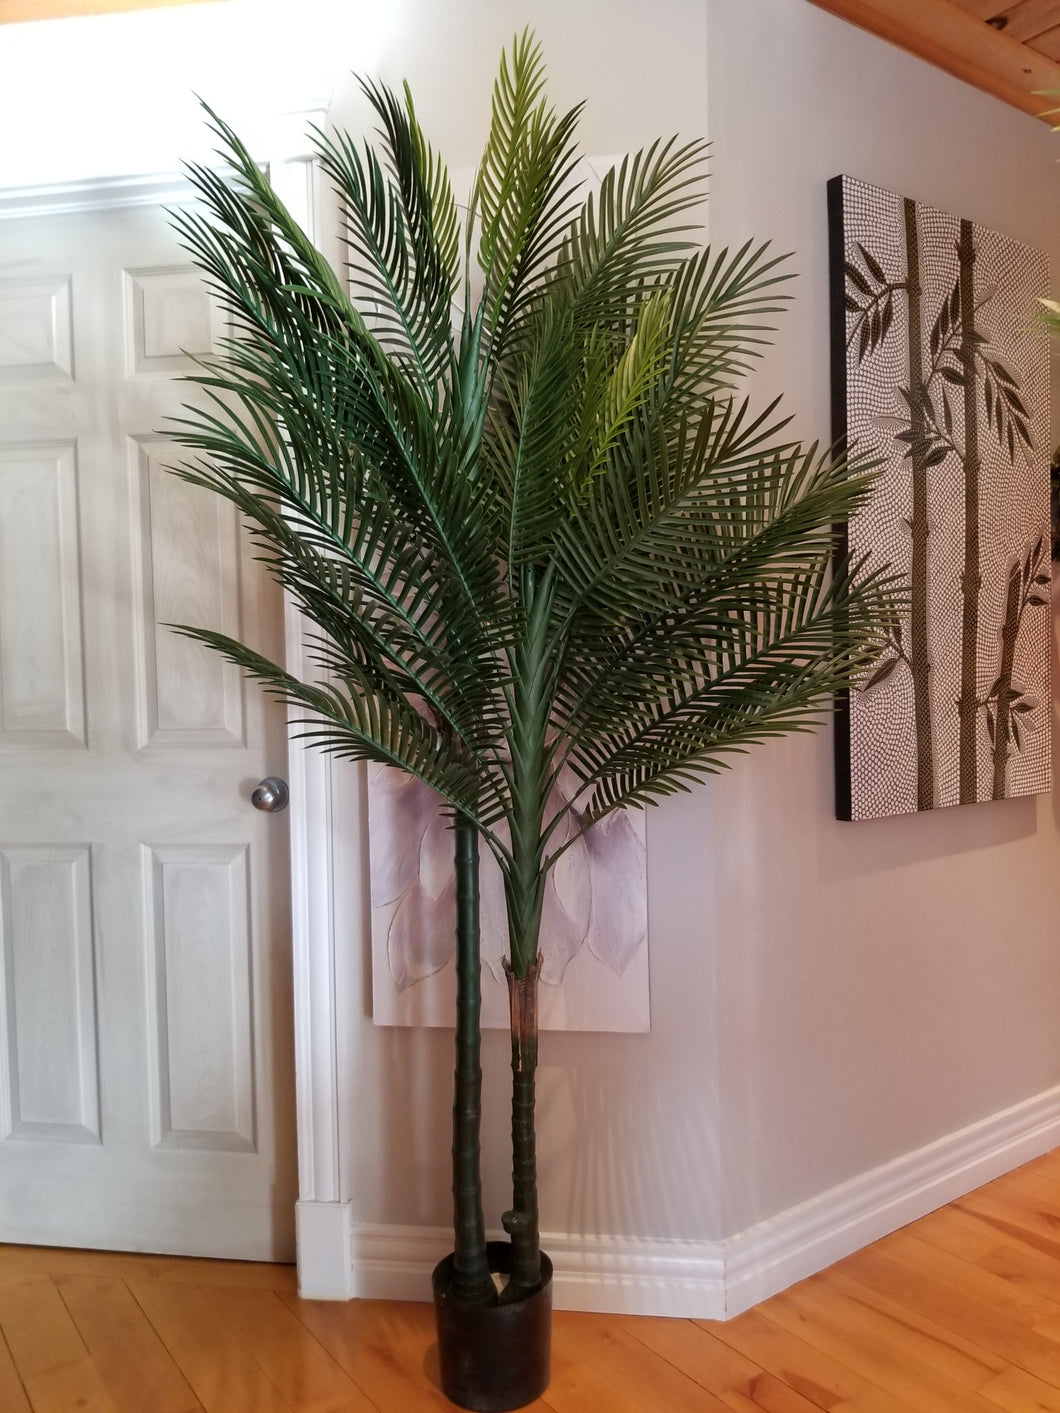 7 foot big robellini palm tree for sale